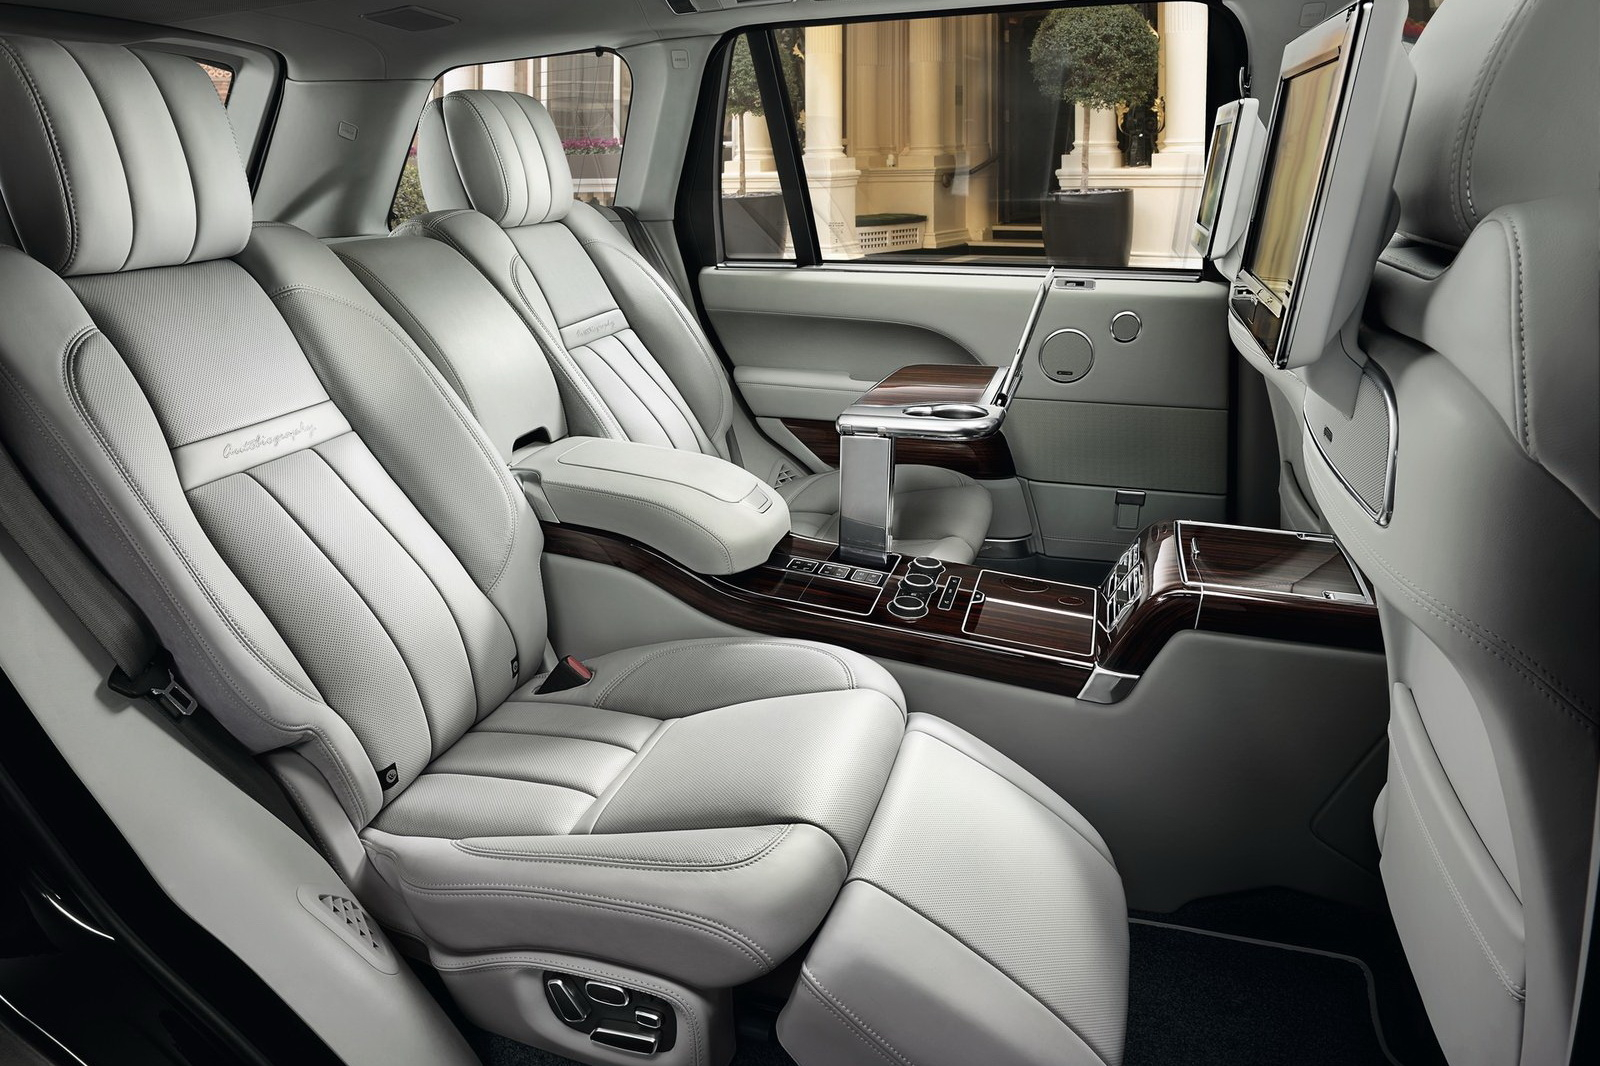 2019 Land Rover Range Rover SV Autobiography new photo - 2